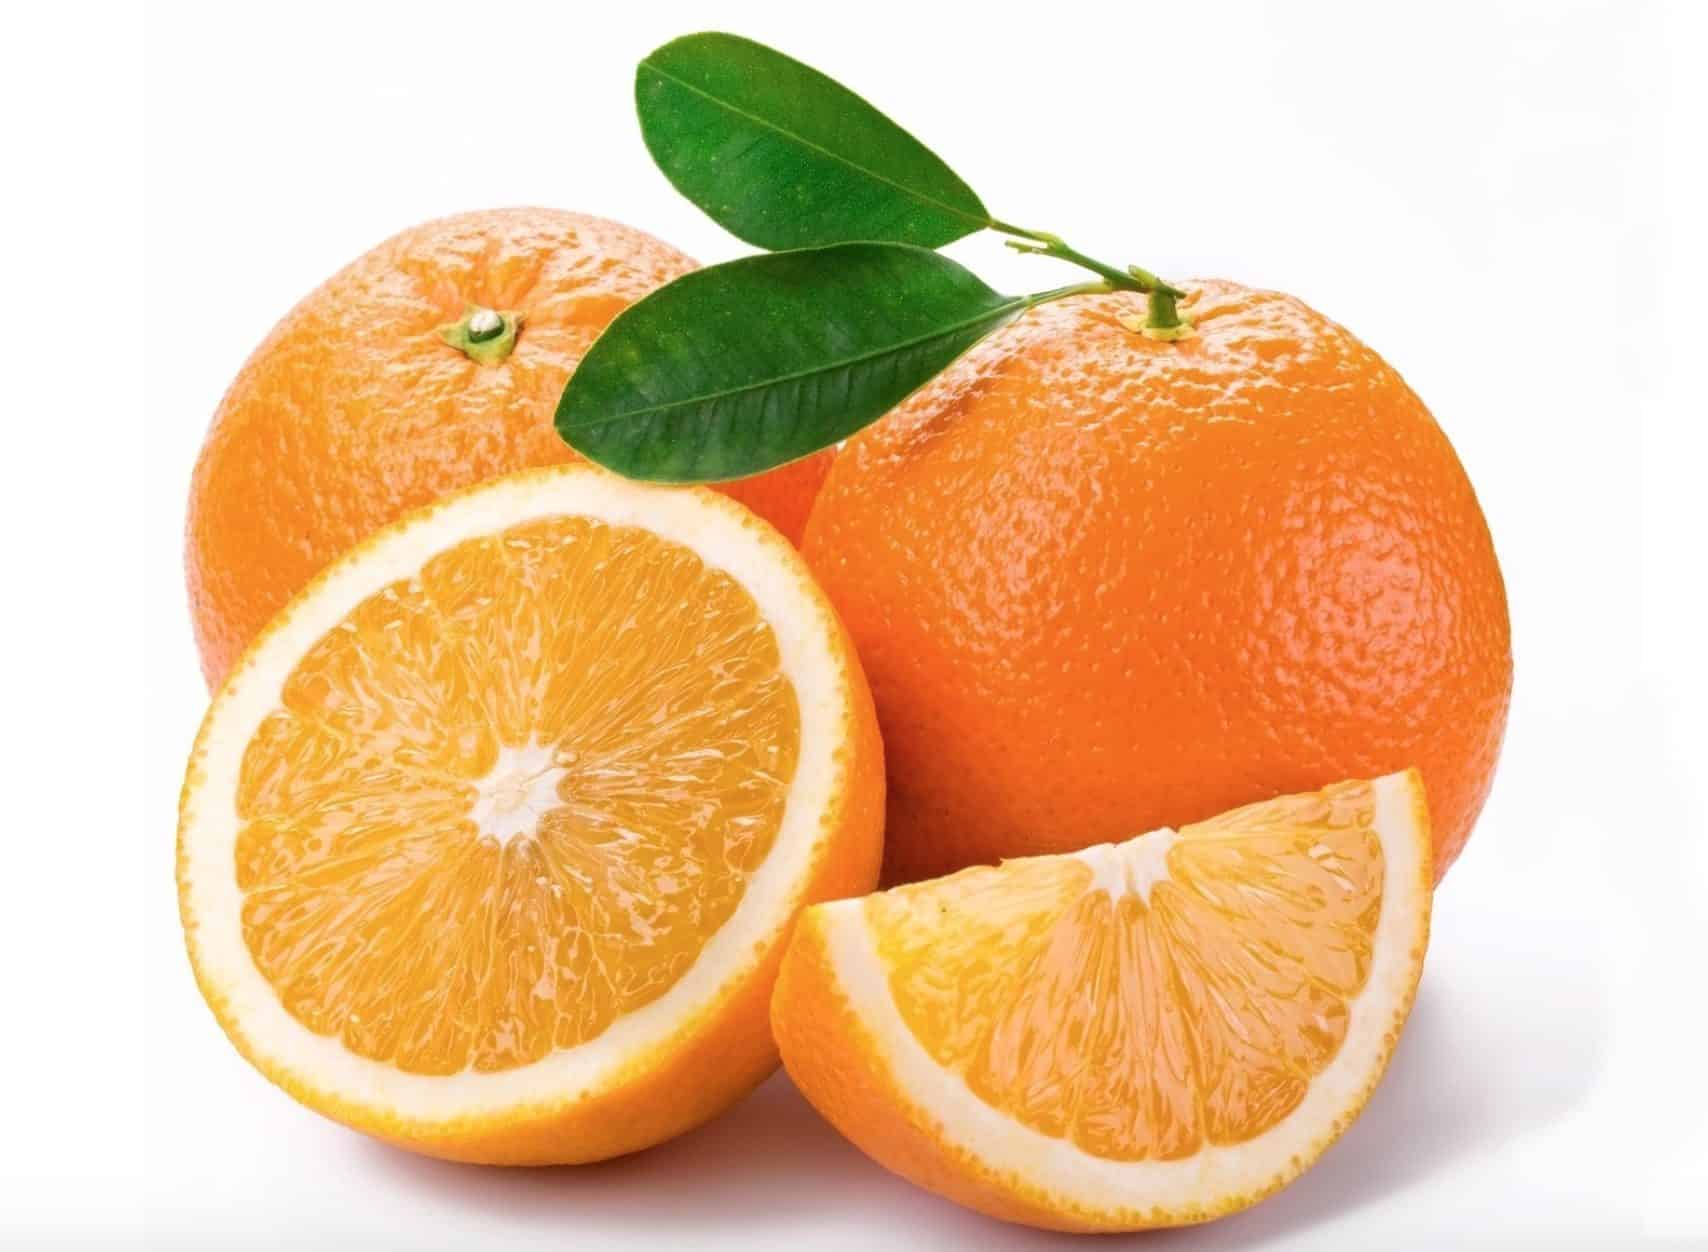 Tips and recommendations on how dogs can eat oranges.